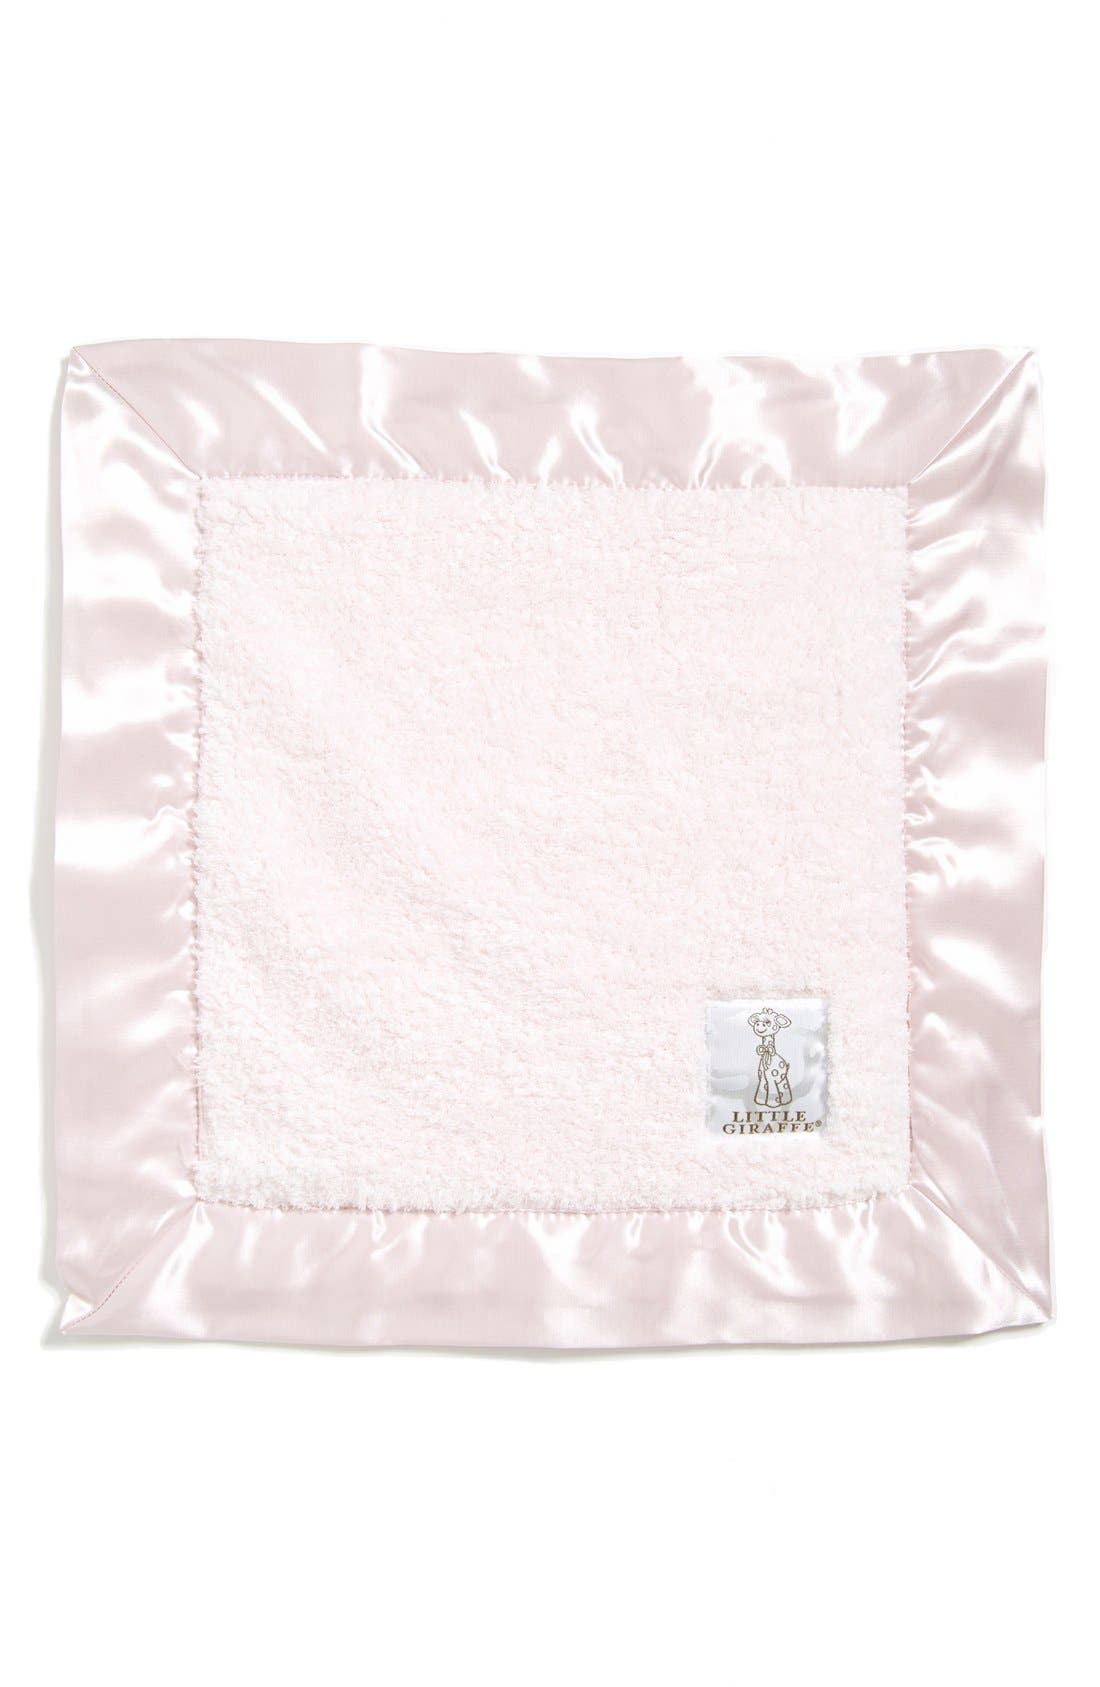 LITTLE GIRAFFE Satin Trim Chenille Blanky, Main, color, LIGHT PINK